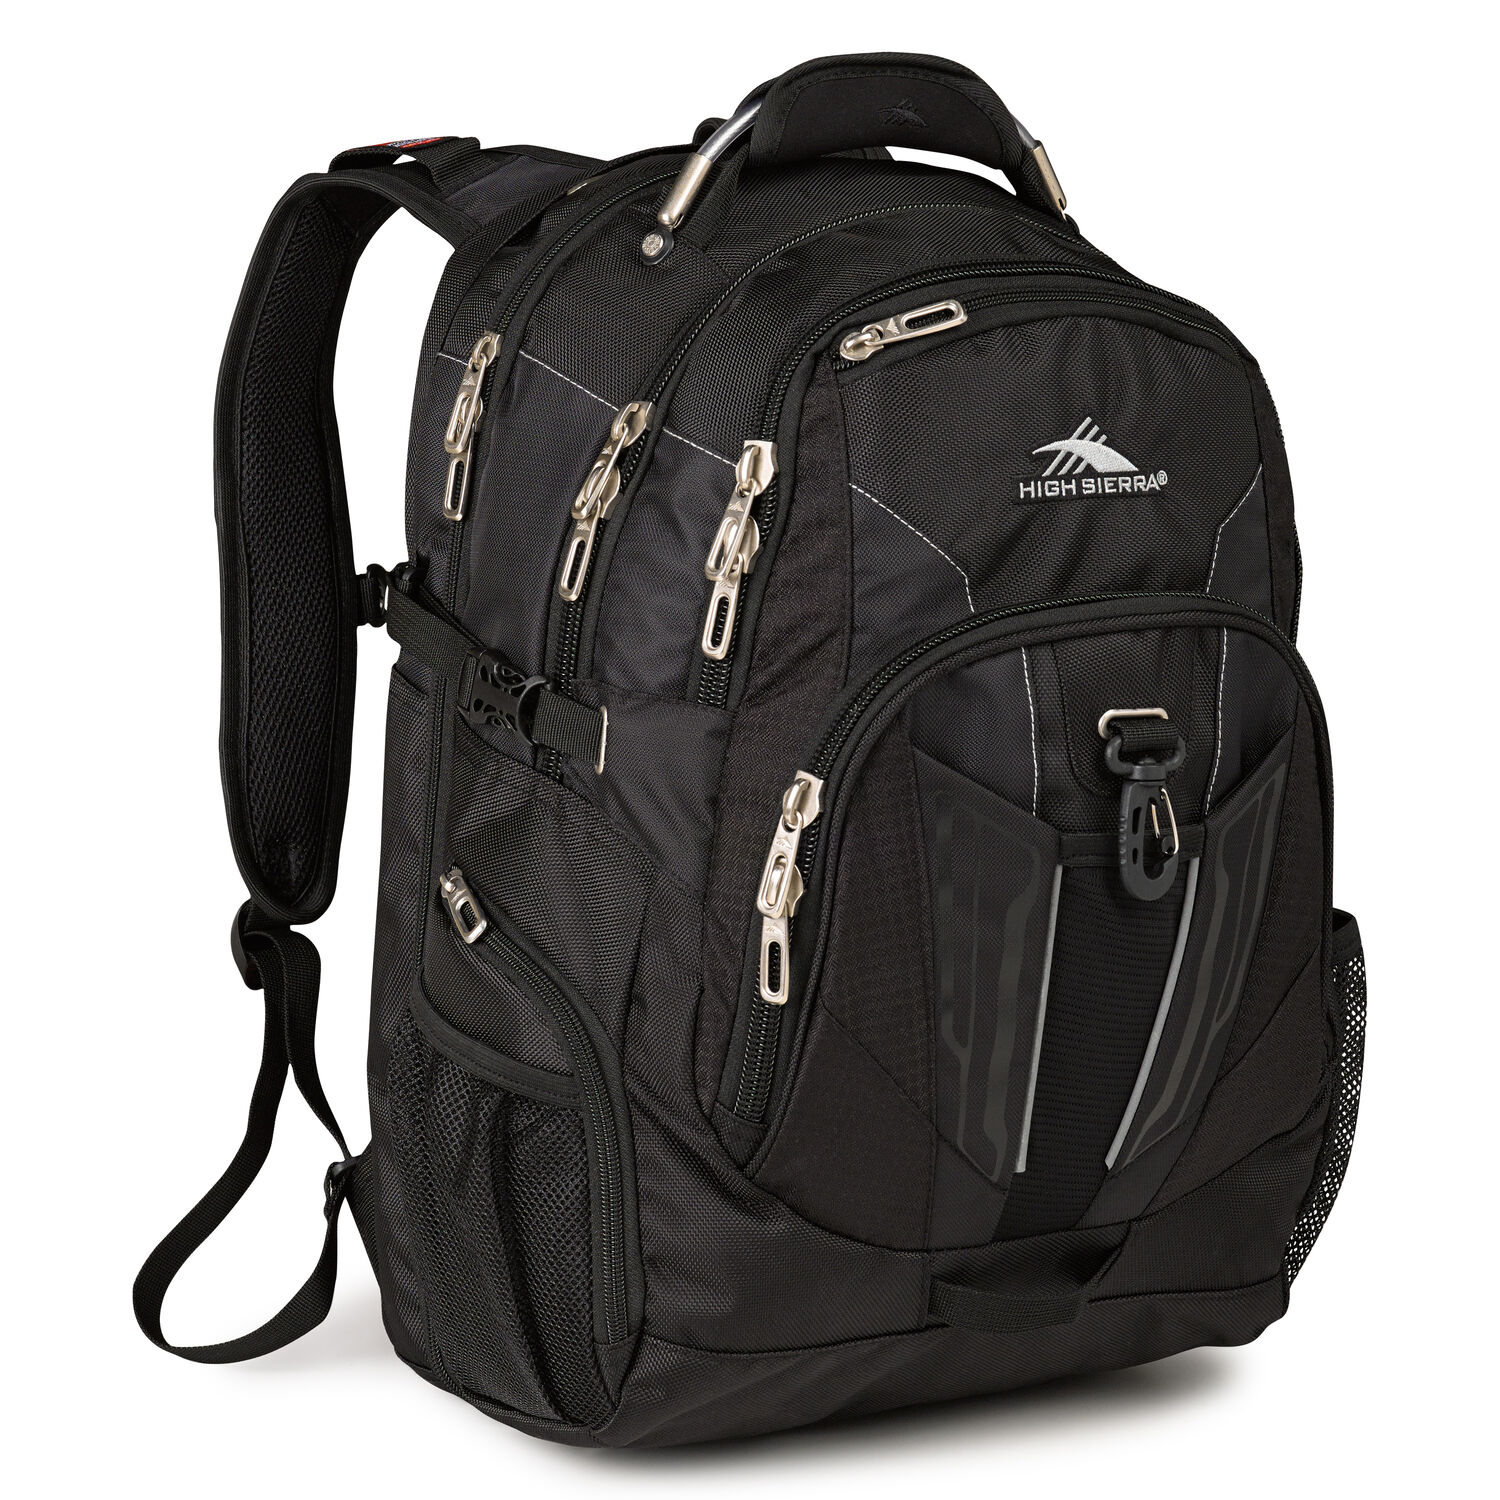 Best place to buy Swiss backpacks?? - RedFlagDeals.com Forums